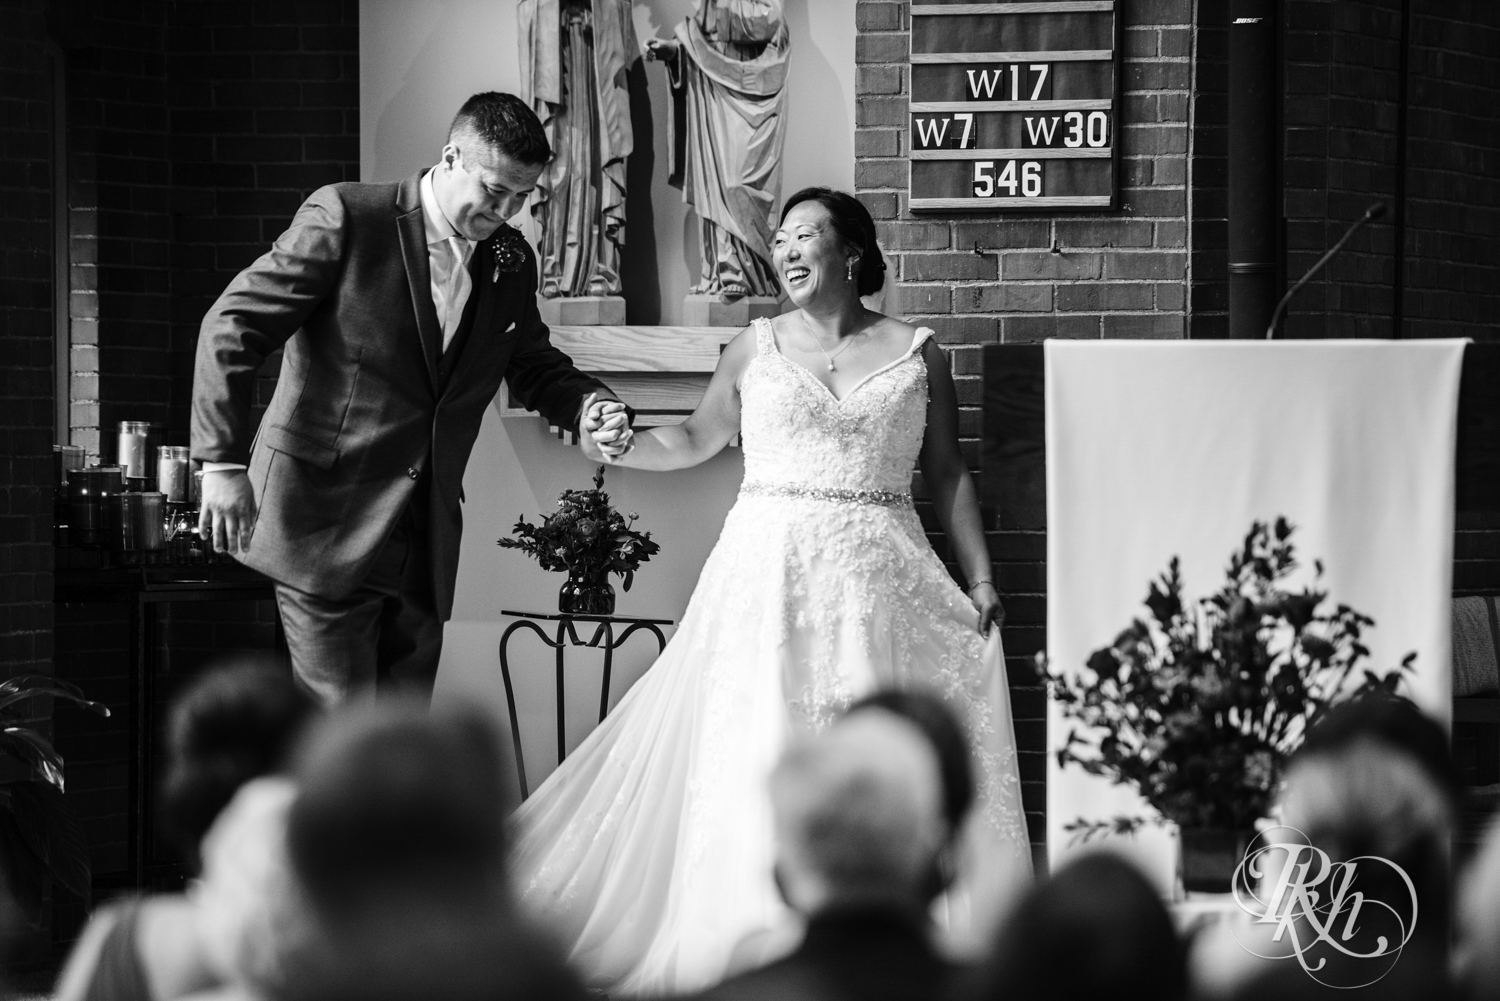 Jana and Paul - Minnesota Wedding Photography - Kellerman's Event Center - RKH Images  (43 of 77).jpg